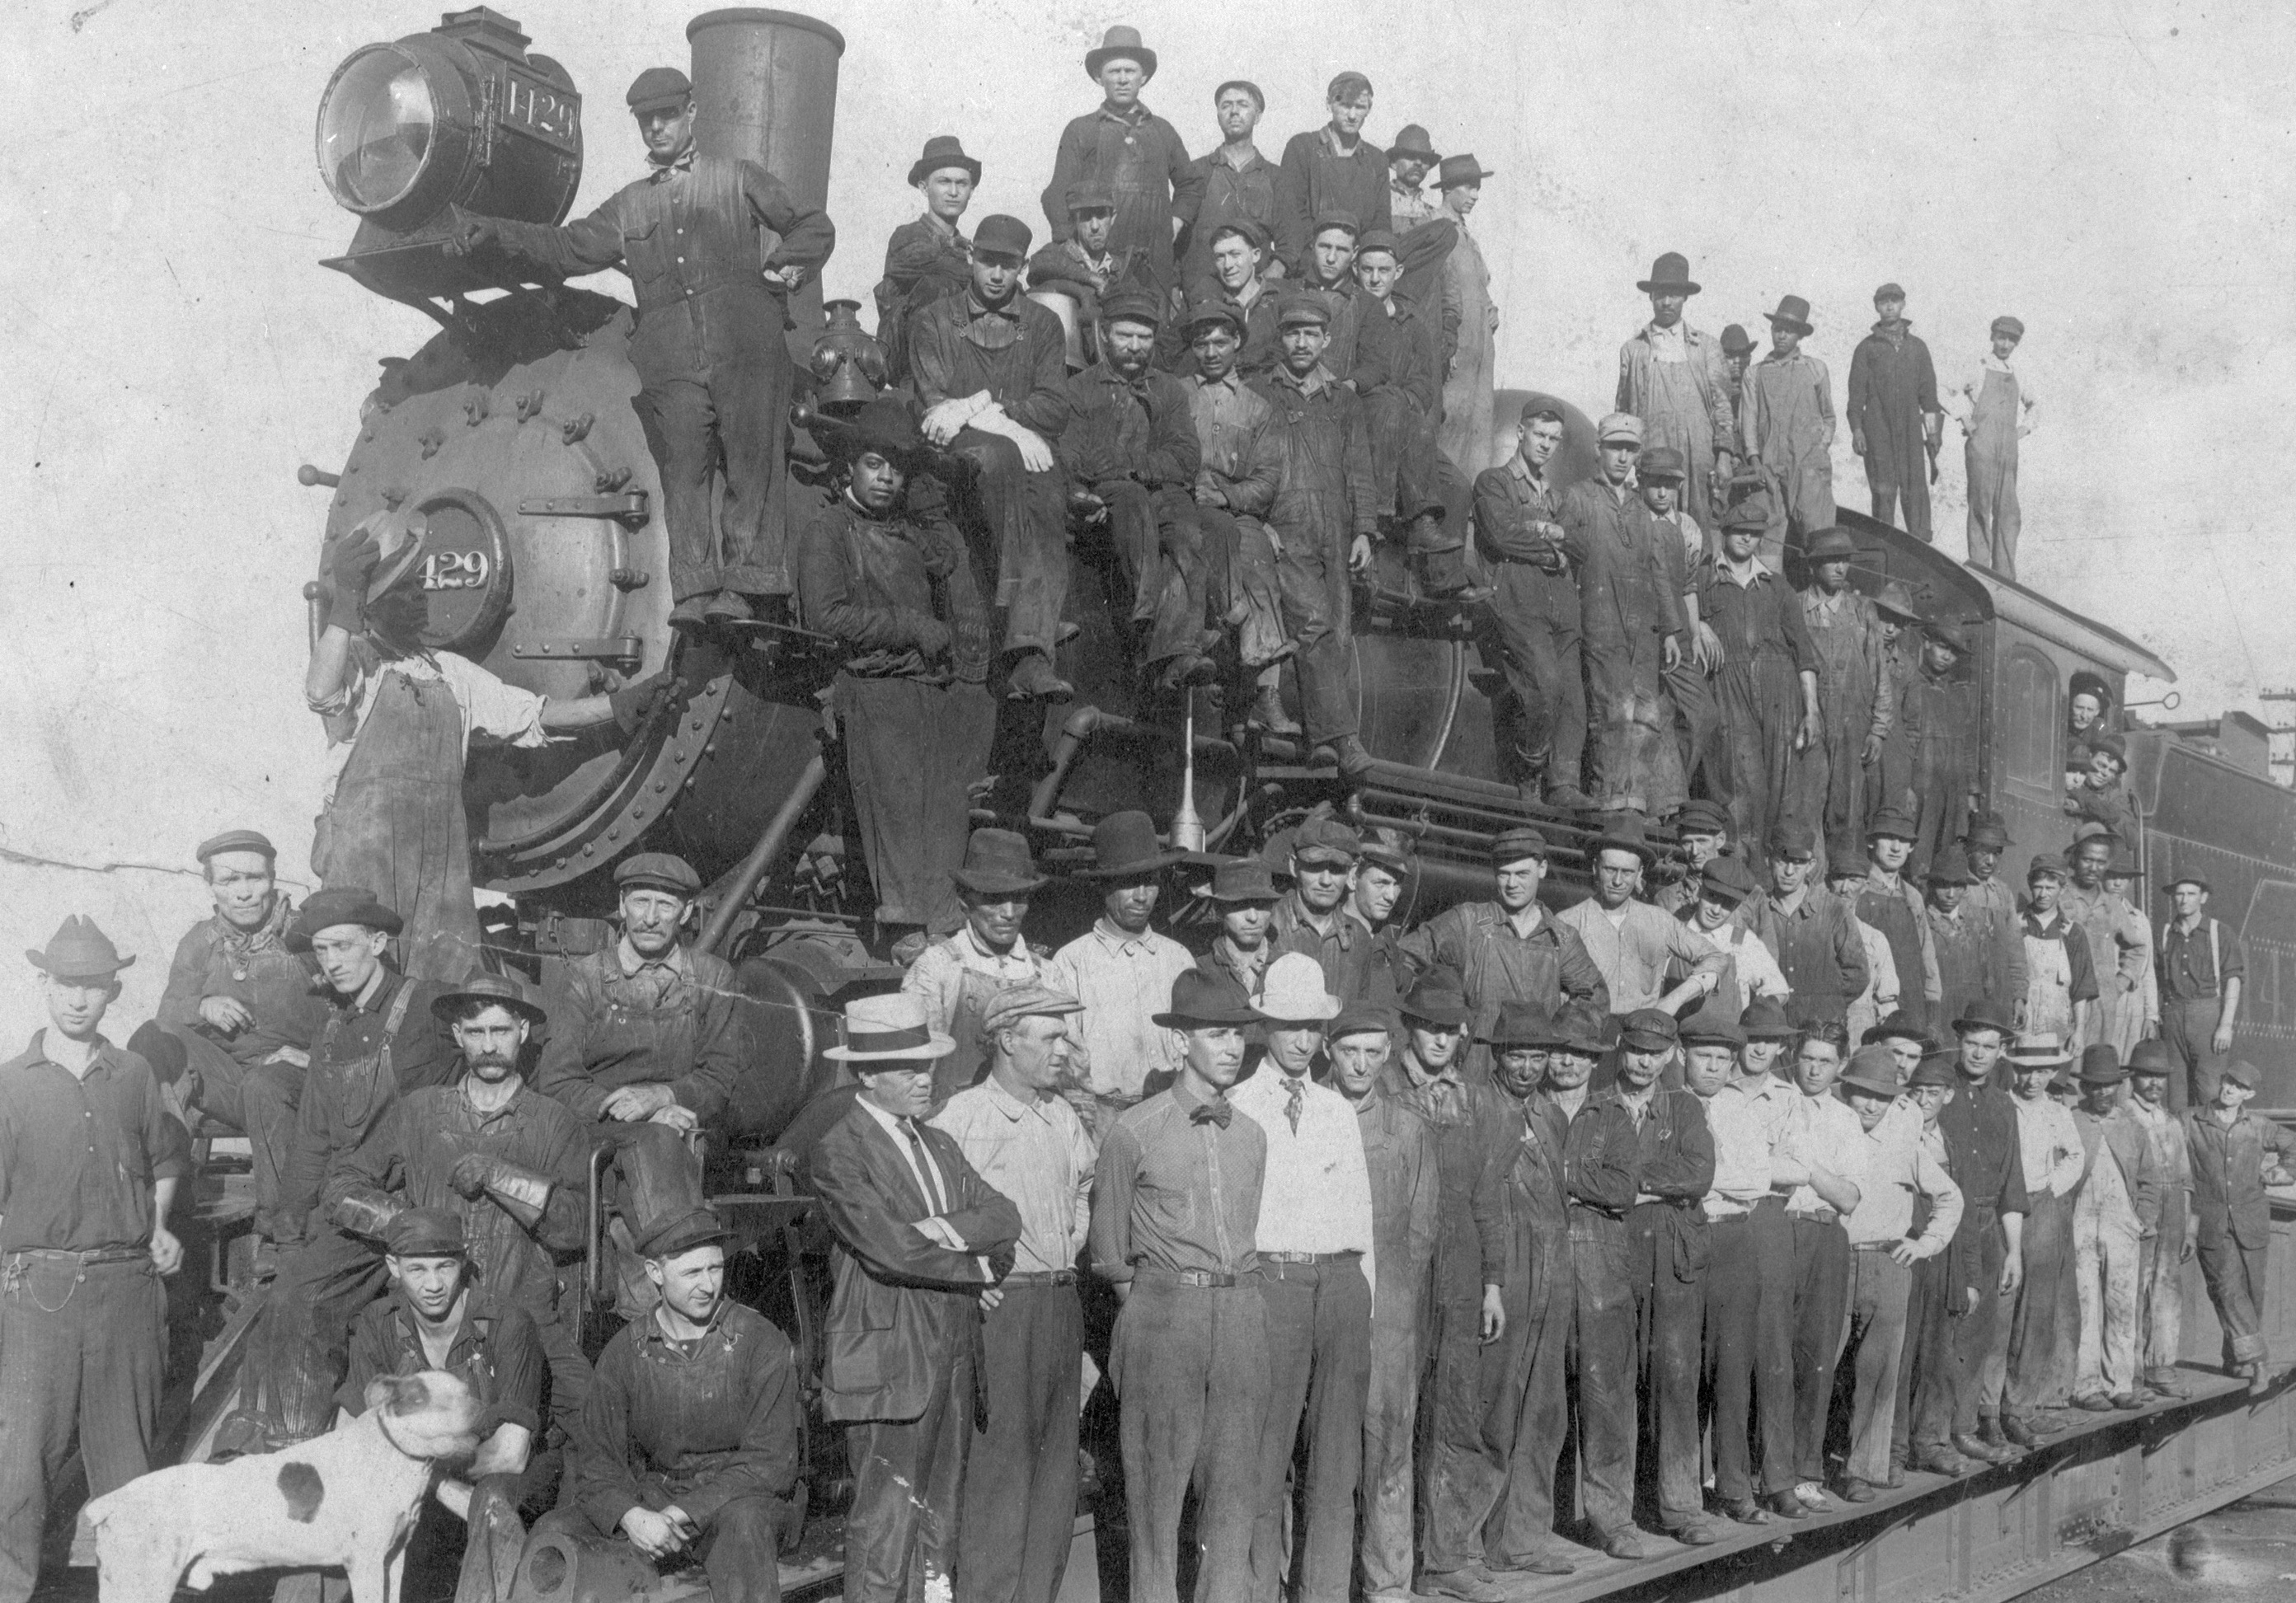 Railroaded: The Industry That Shaped Kansas image